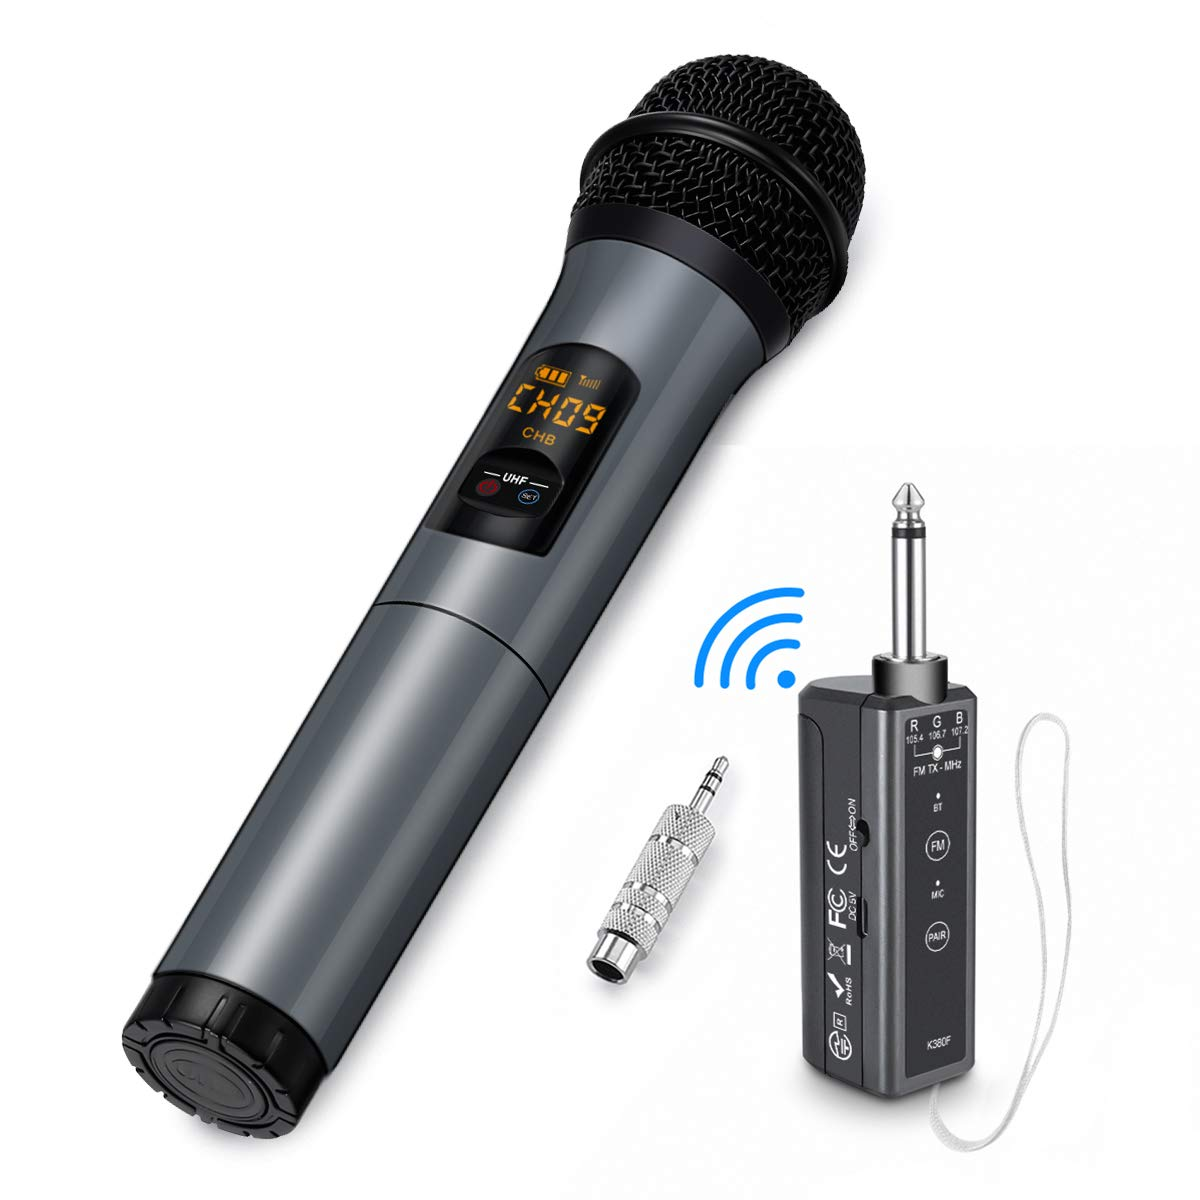 Wireless Microphone, 10 Channel UHF Wireless Bluetooth Microphone System, Dynamic Handheld Cordless Mic with Rechargeable Receiver for Karaoke/Singing/Church/Speech by SAWAKE